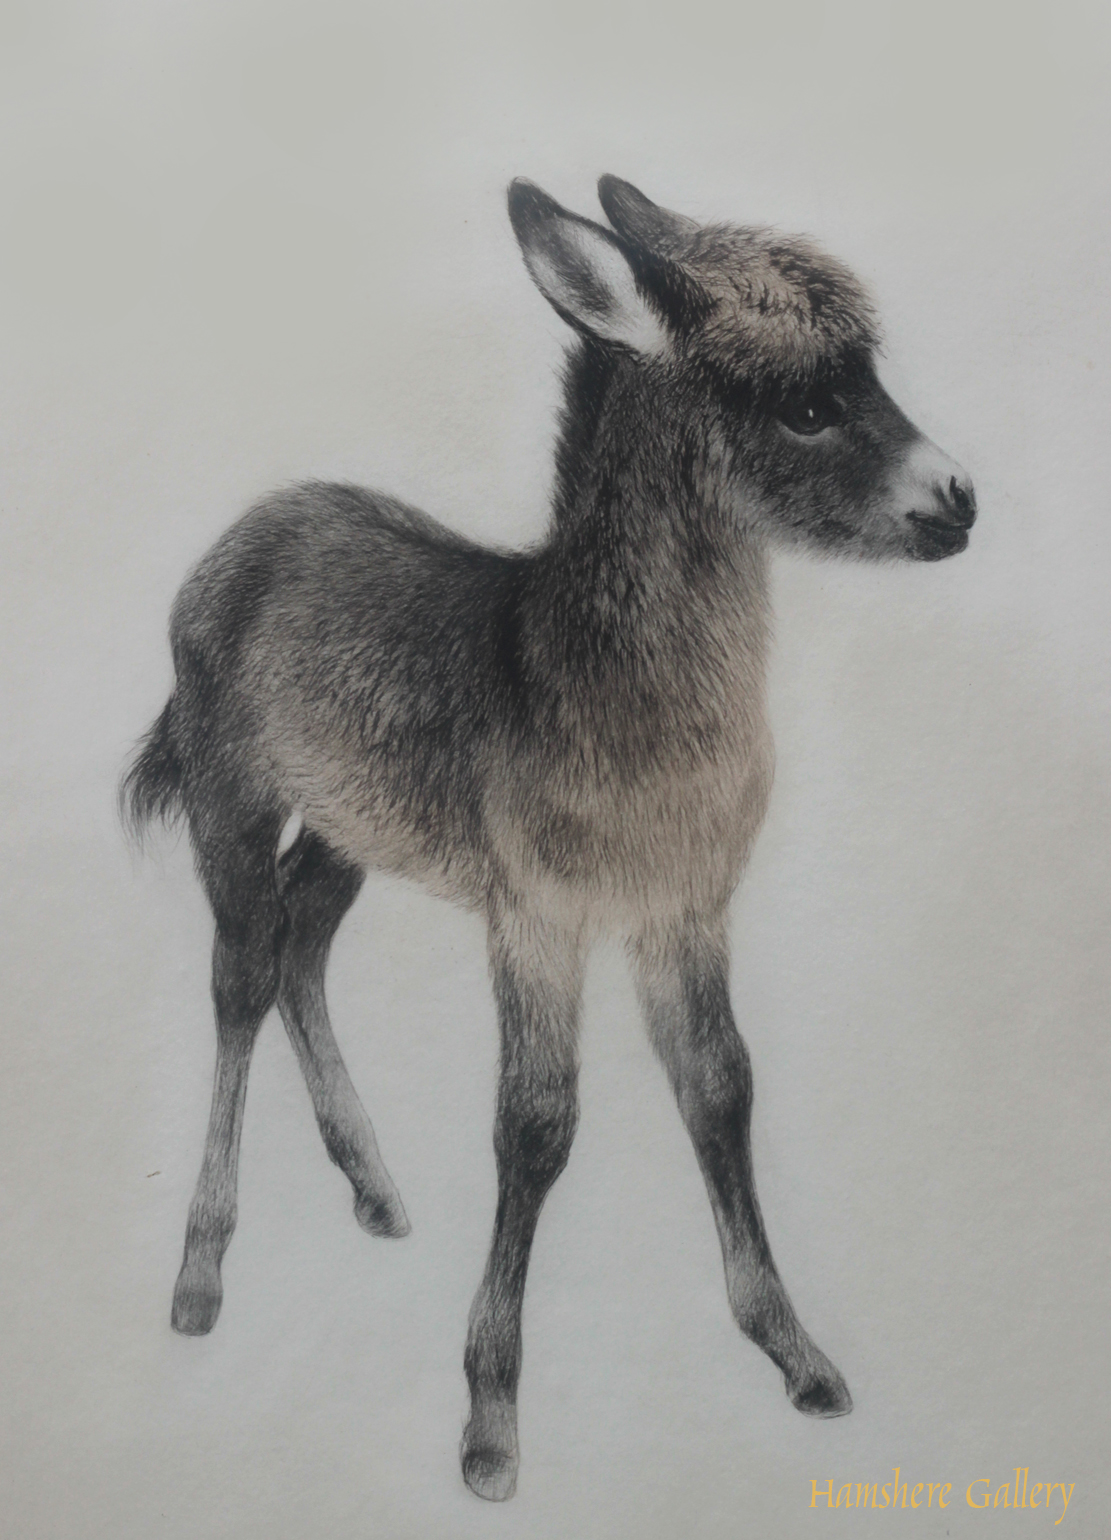 Click to see full size: Young donkey aquatint dry-point etching by Kurt Meyer Eberhardt